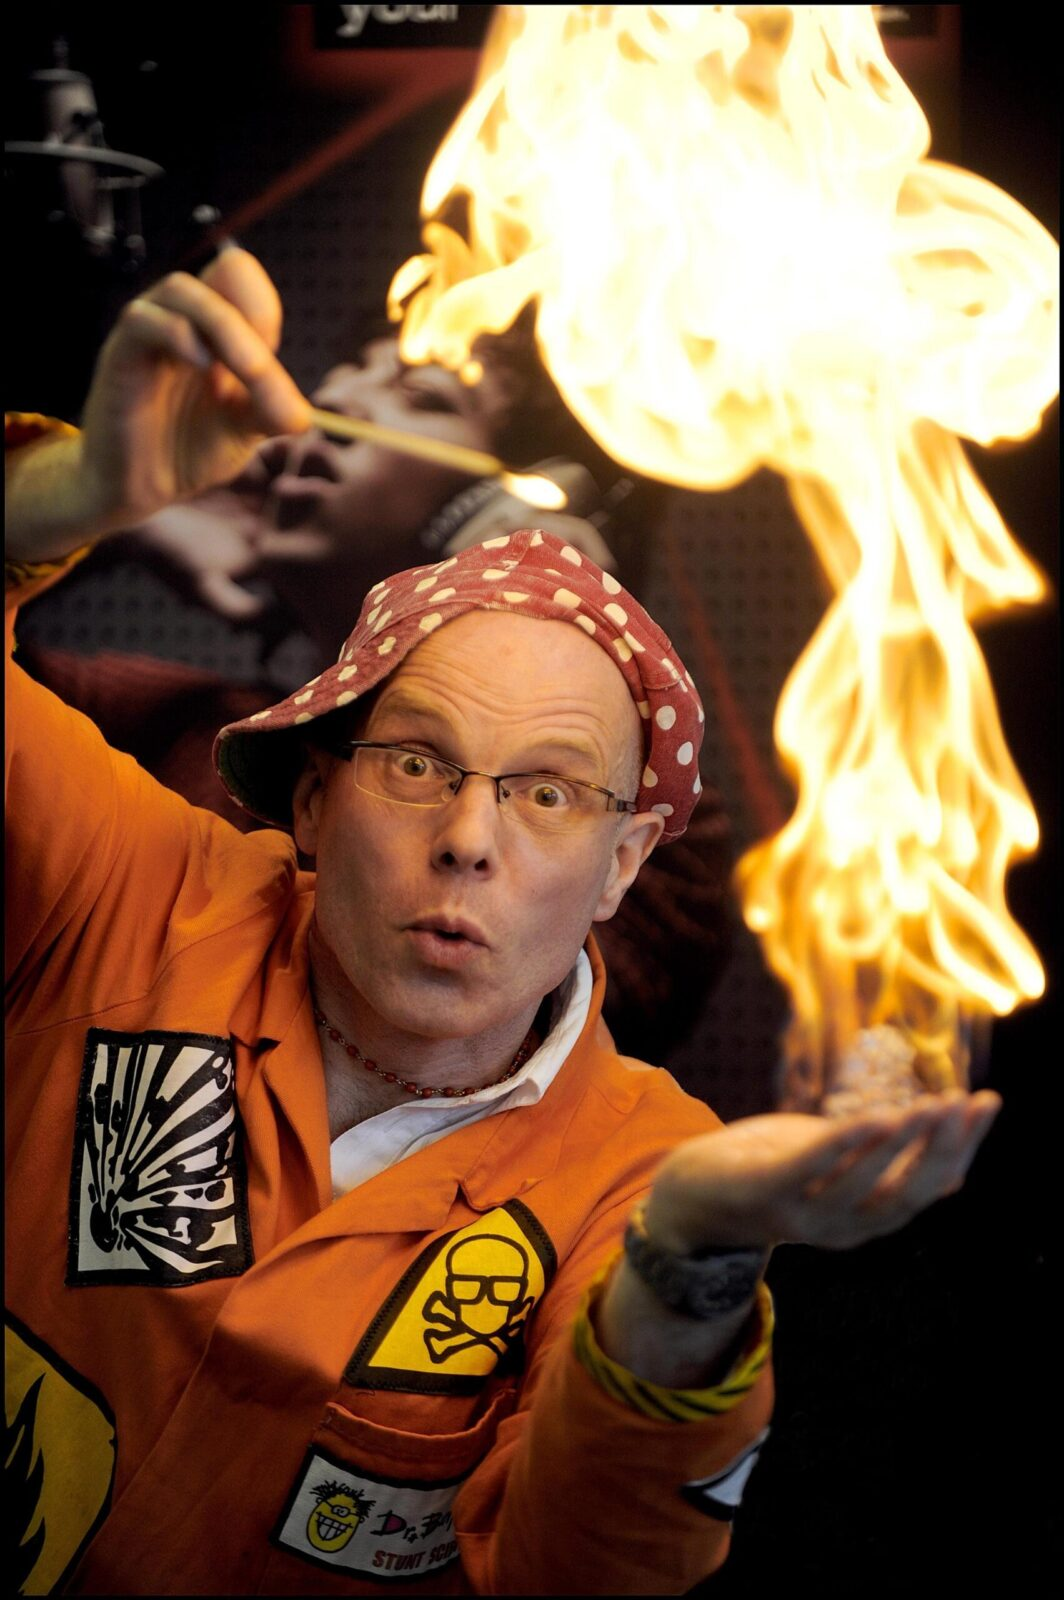 Dr. Bunhead setting flame in his hand